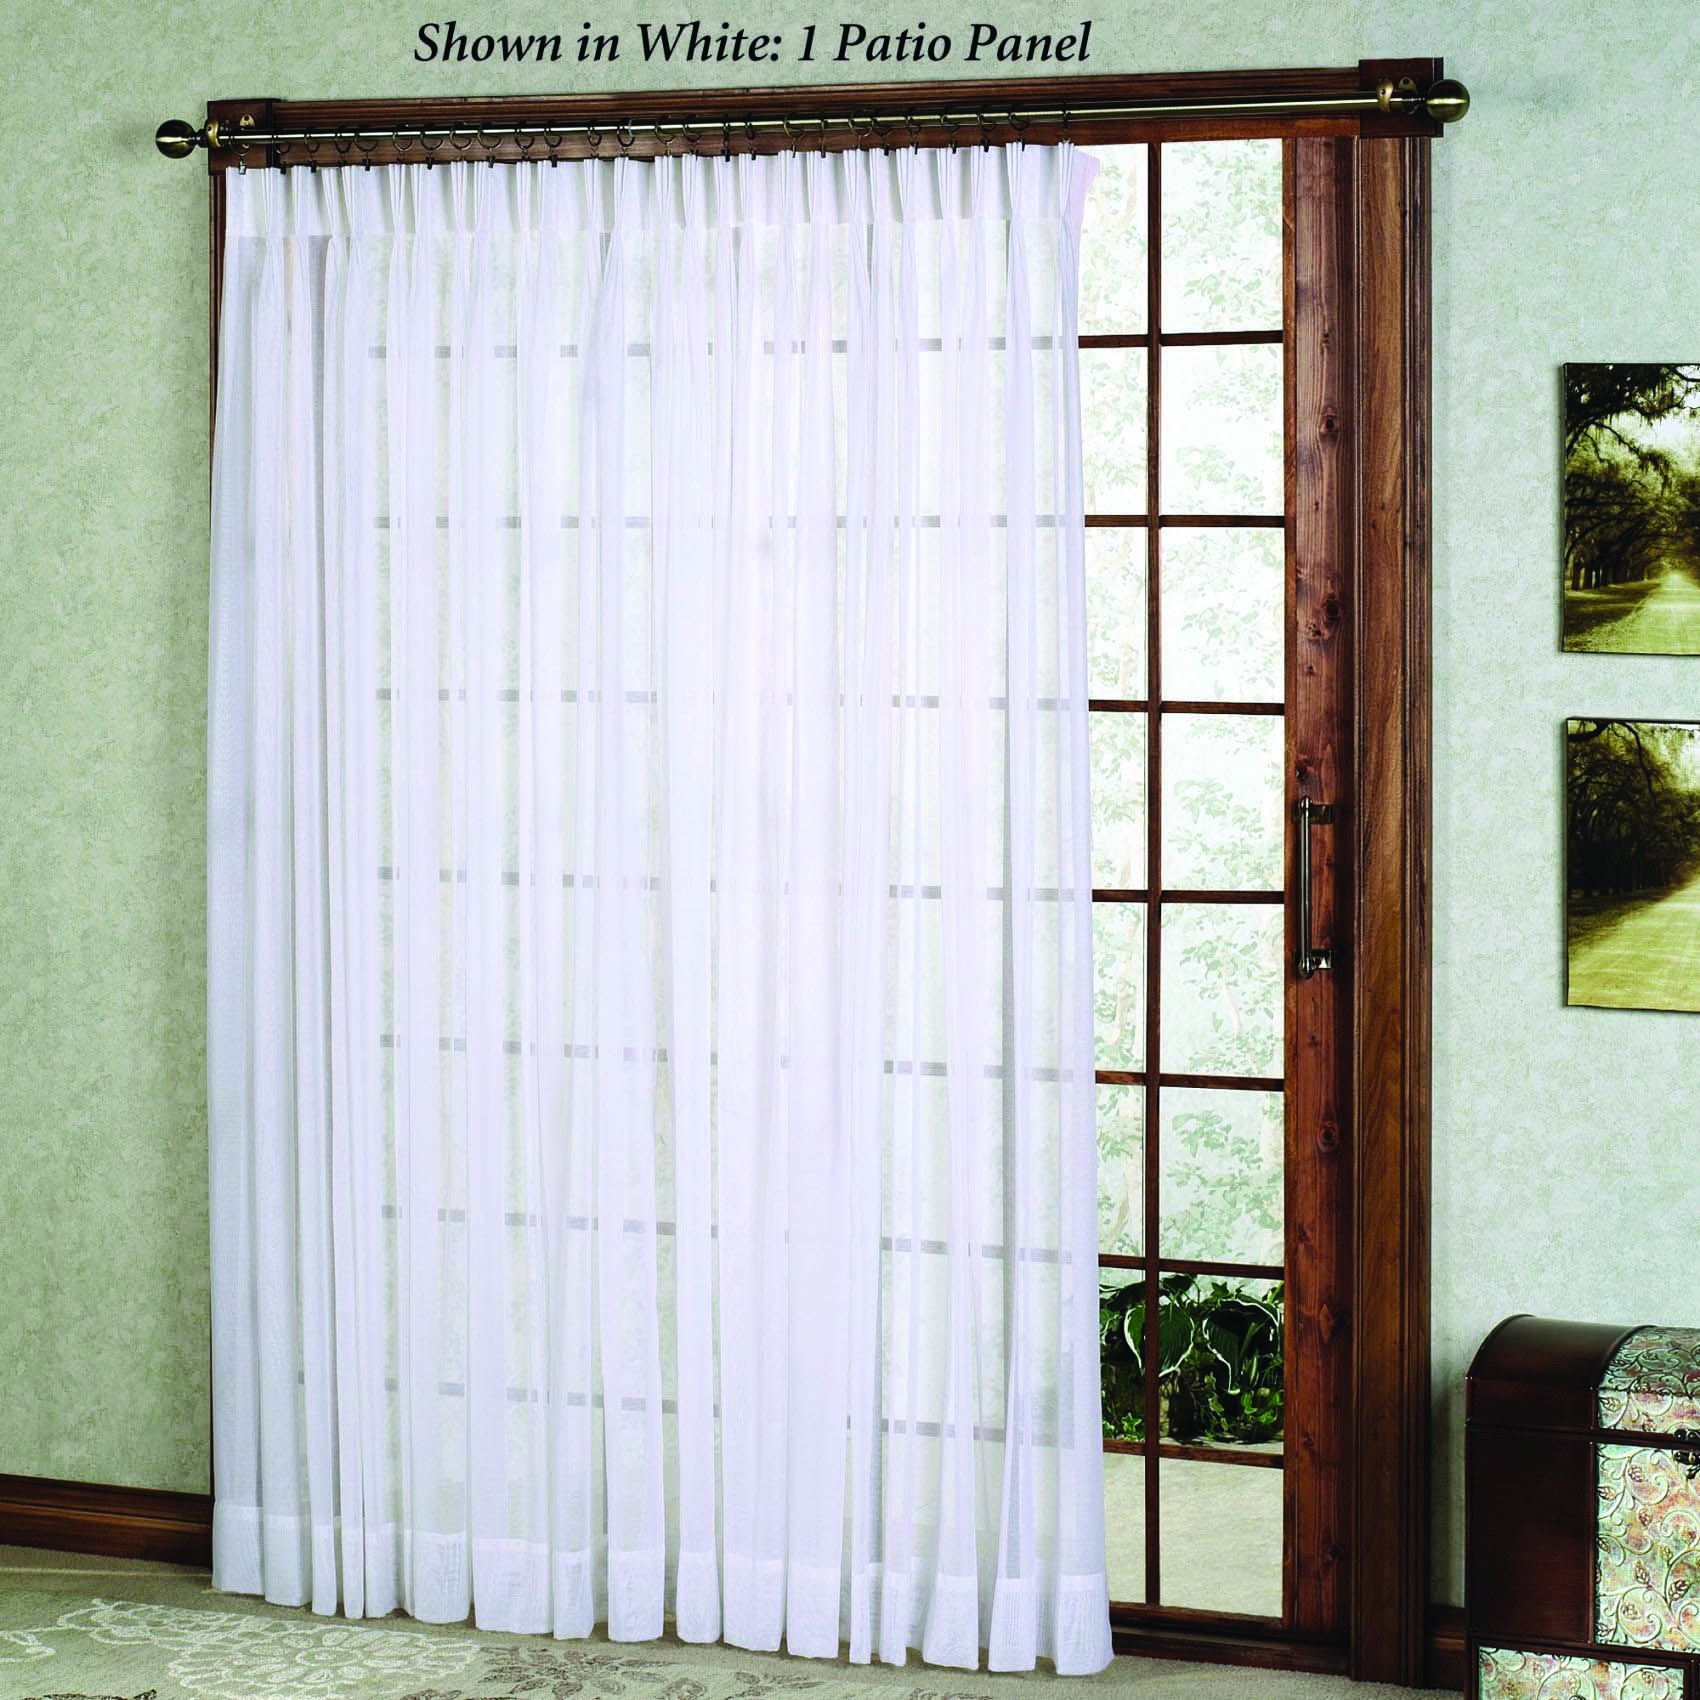 Good Sliding Patio Door Curtains Ideas Only In Miral Iva Design Patio Door Curtains Sliding Glass Door Curtains Patio Doors